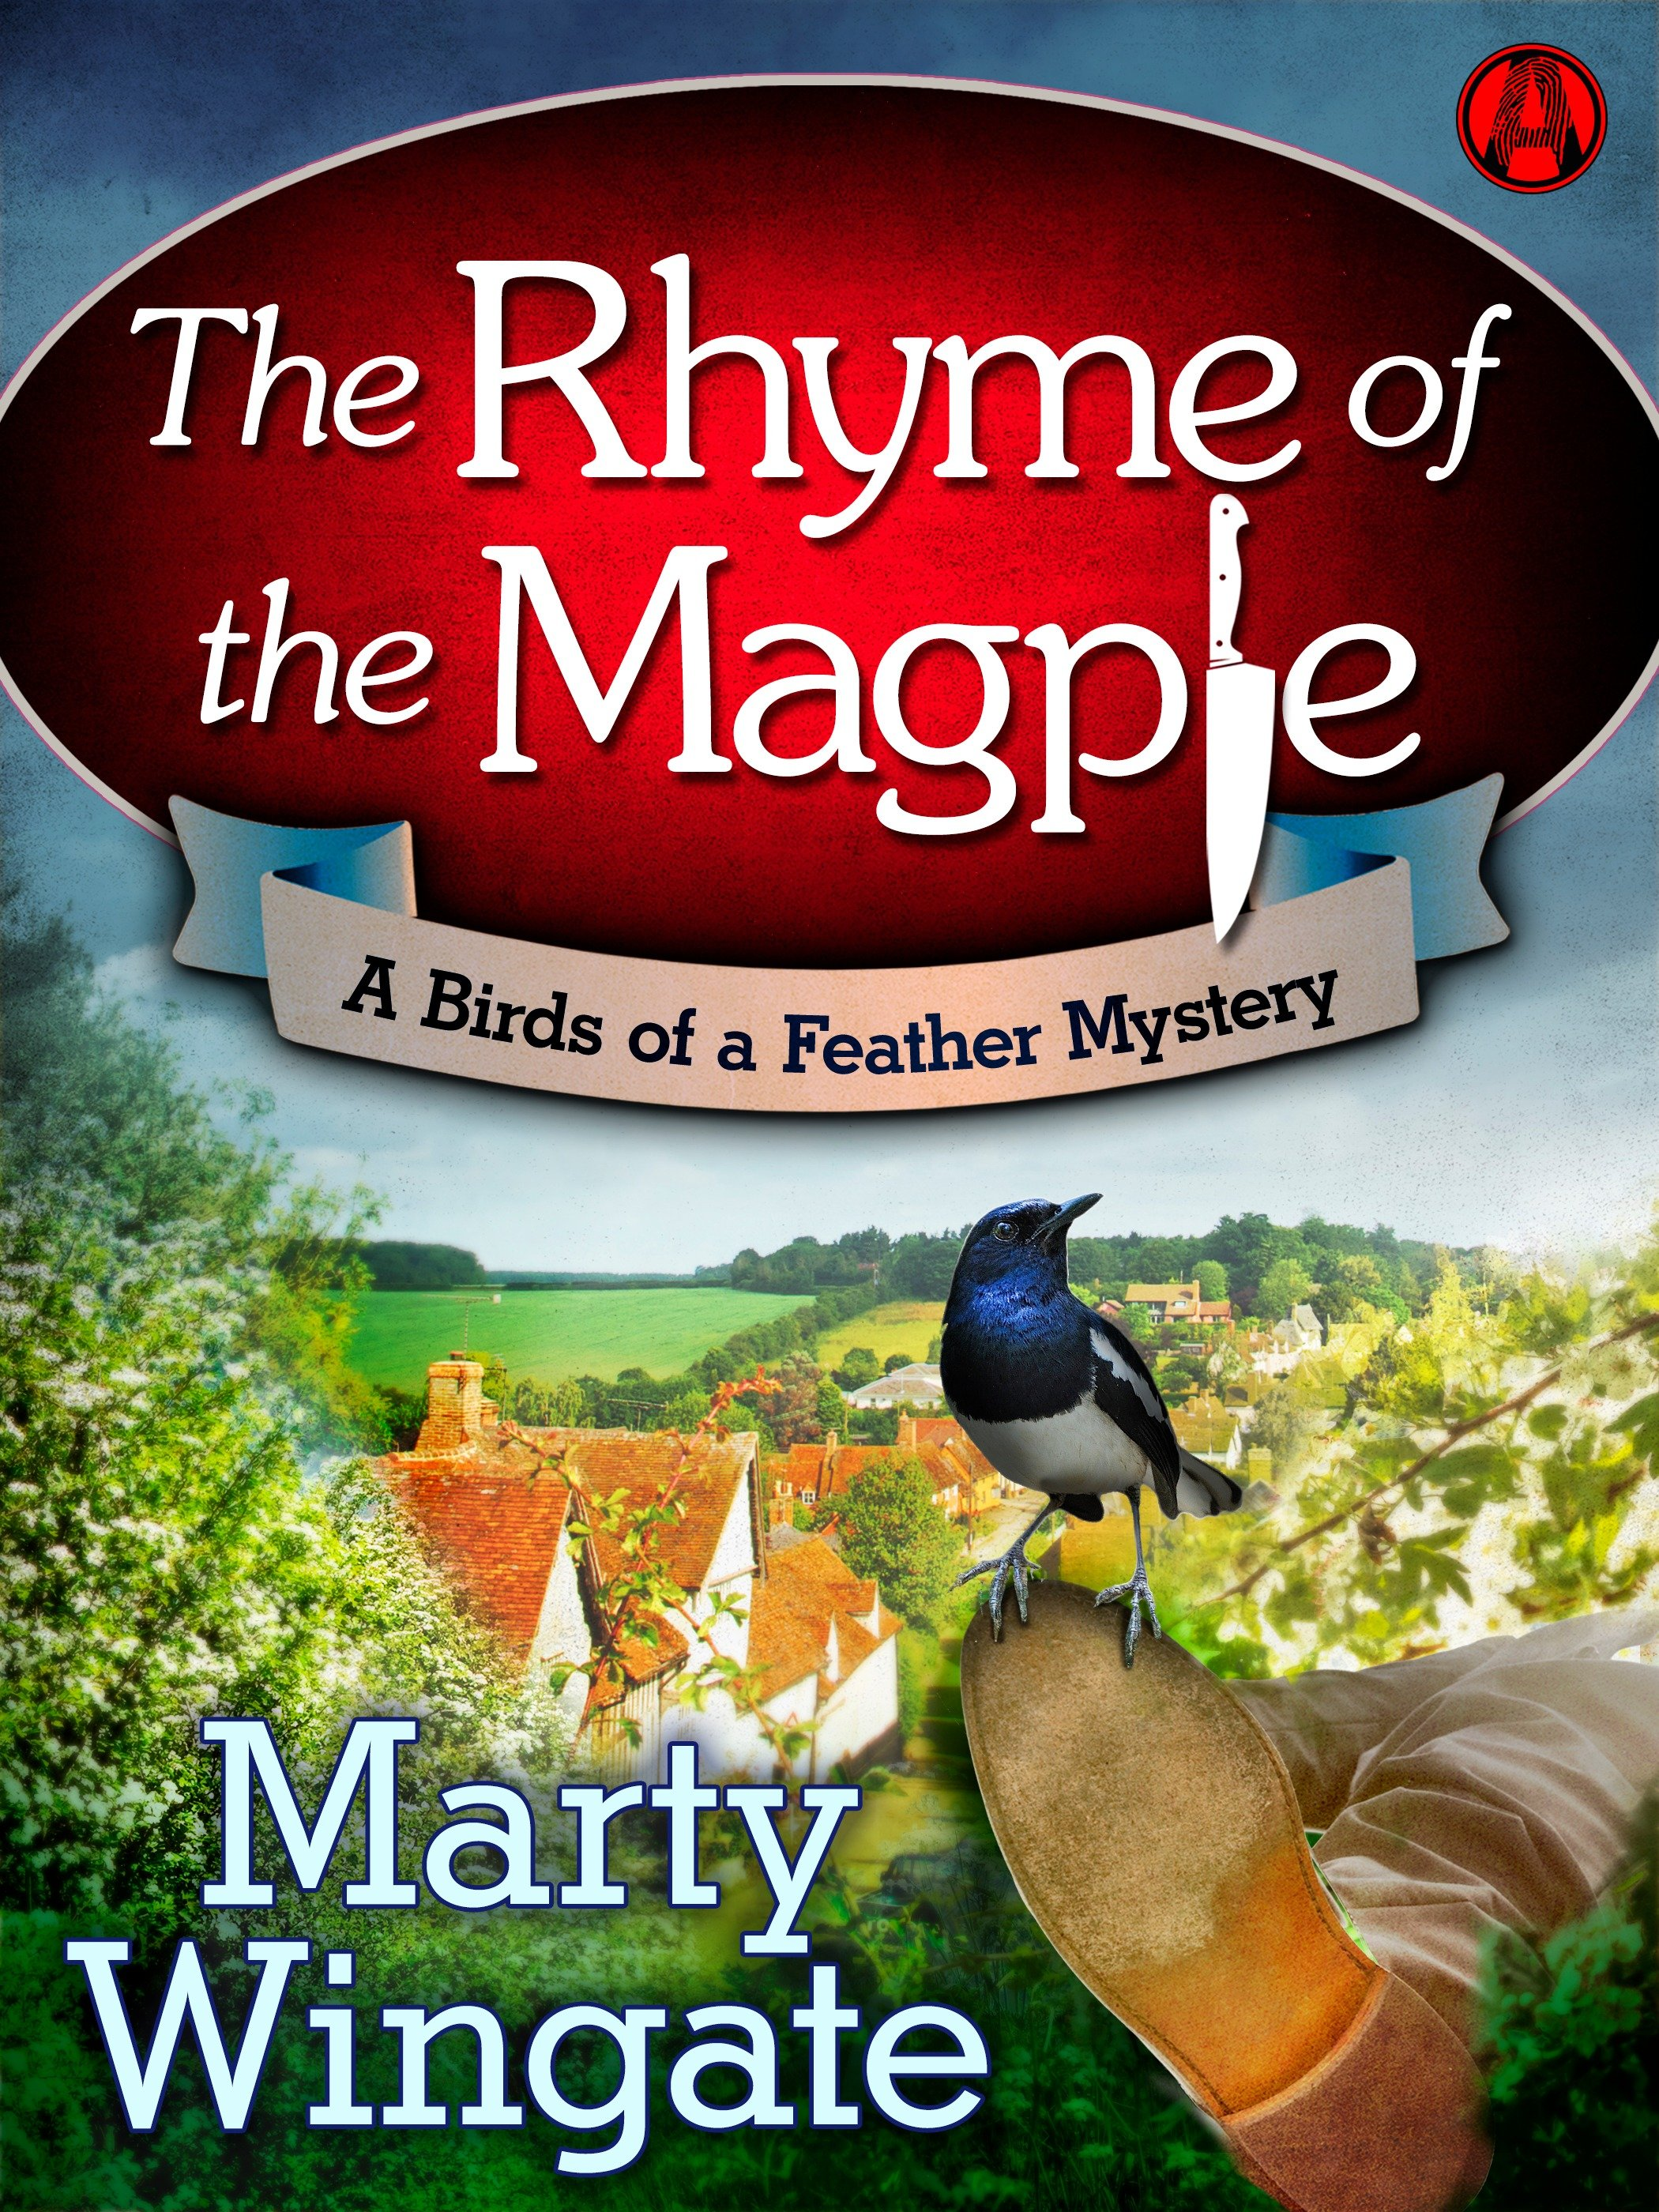 The rhyme of the Magpie cover image